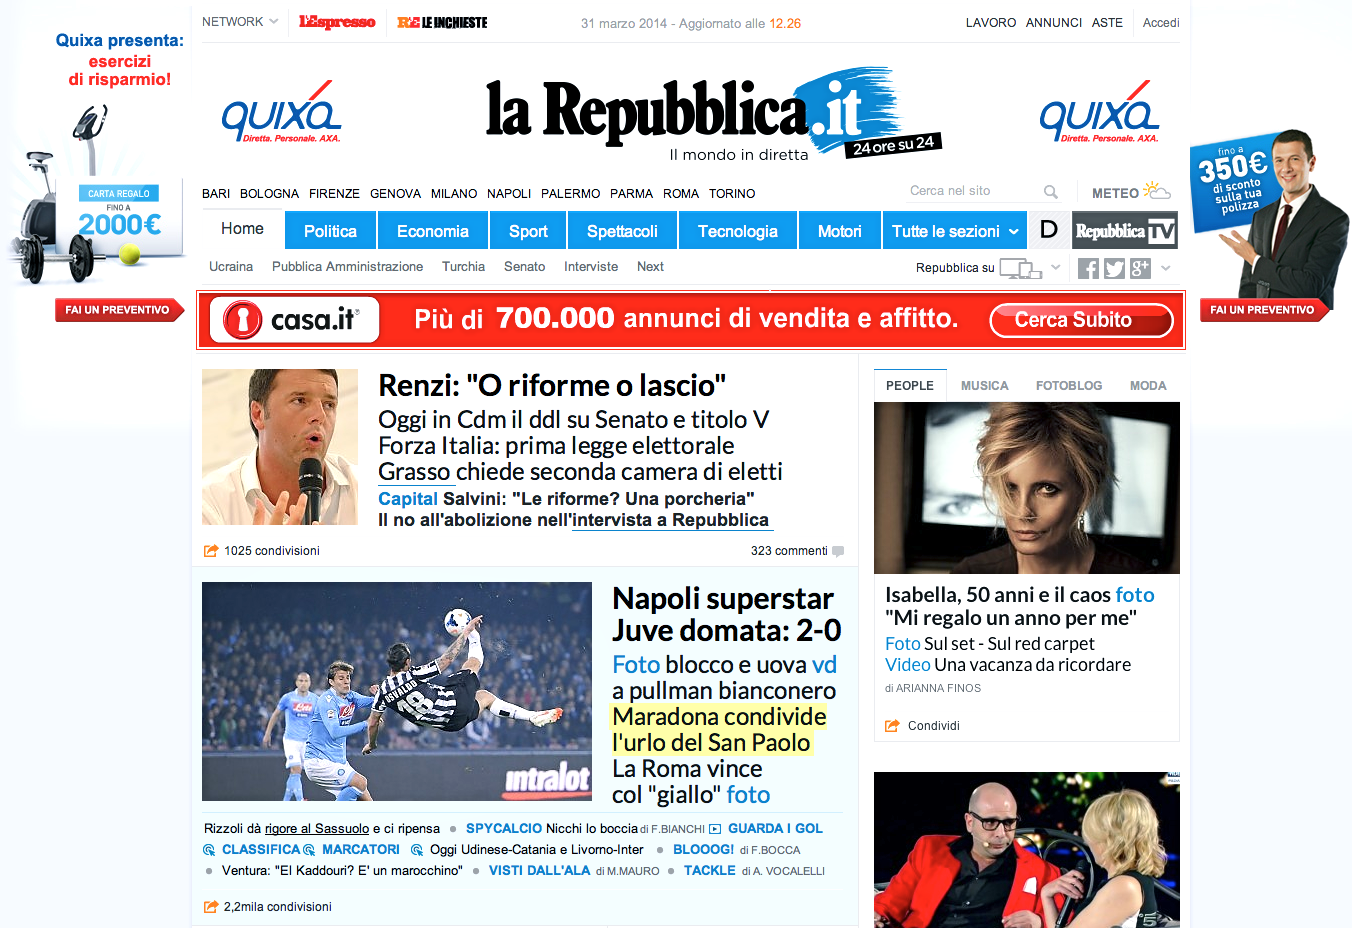 Isabella ferrari sulla homepage di repubblica it woolcan for Repubblica homepage it